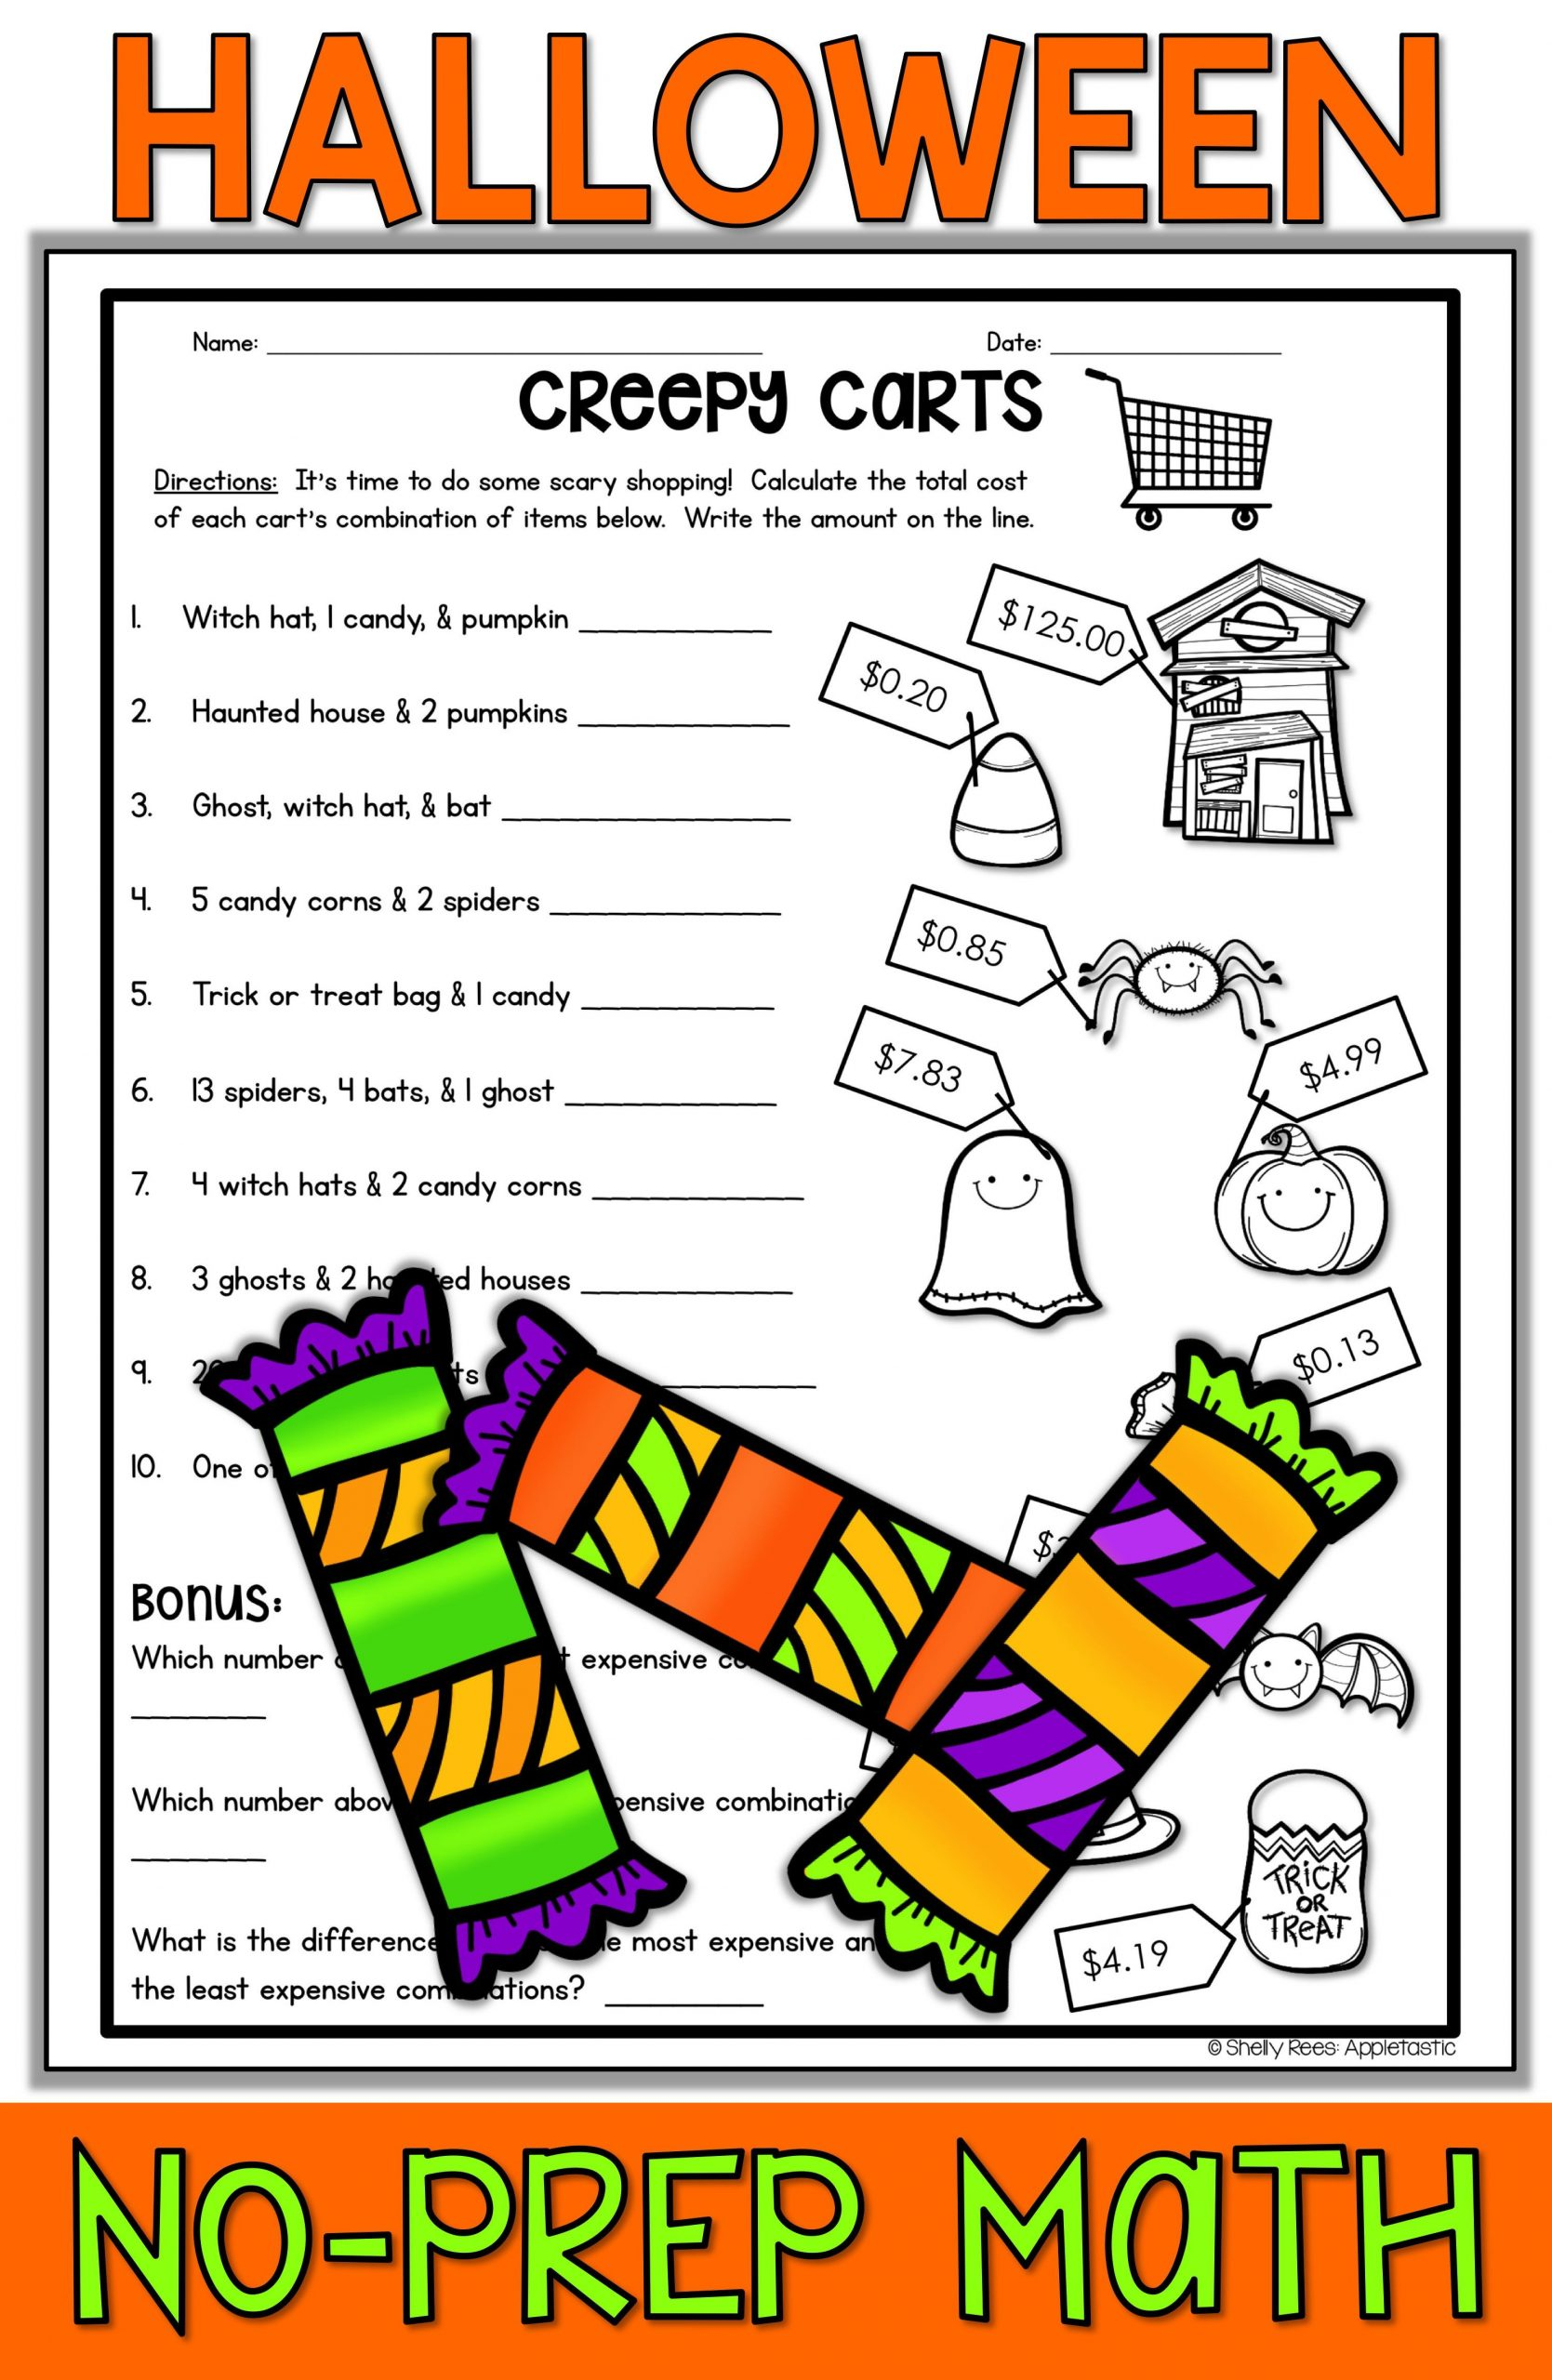 Fun Halloween Math Worksheets for 2nd Grade